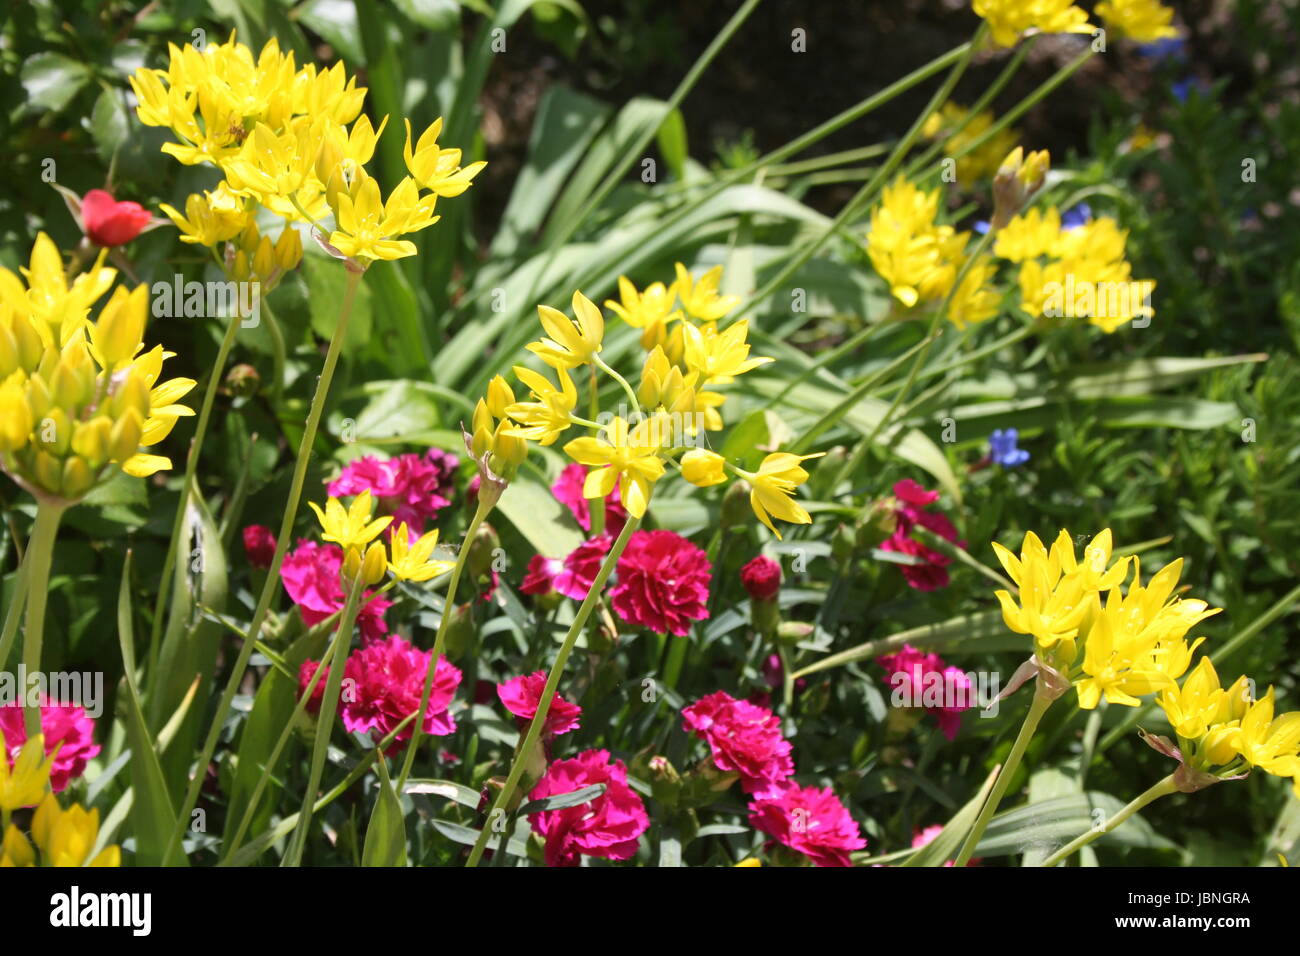 colorful summer flowers - Stock Image